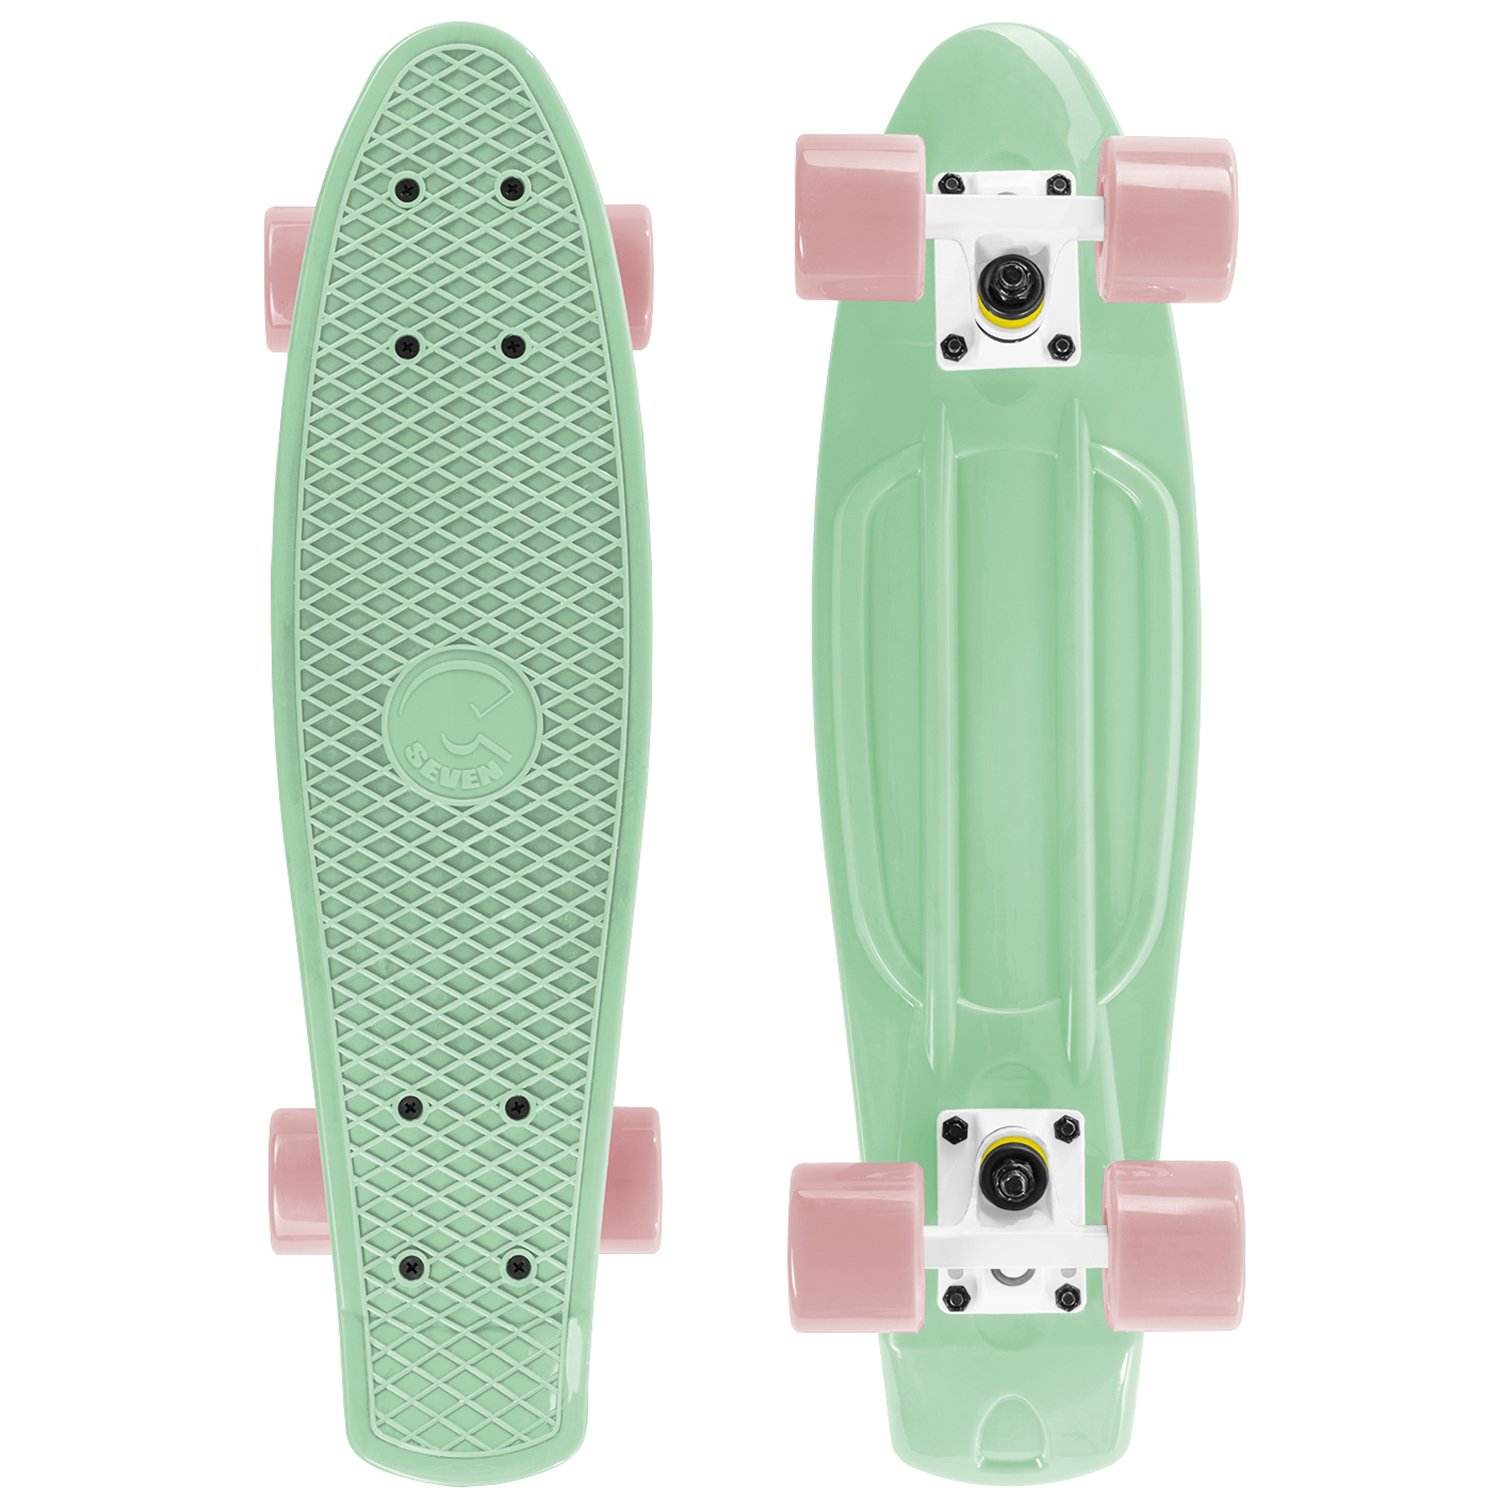 Cal 7 Complete Mini Cruiser | 22 Inch Micro Board | Vintage Skateboard for School and Travel (Salsa) by Cal 7